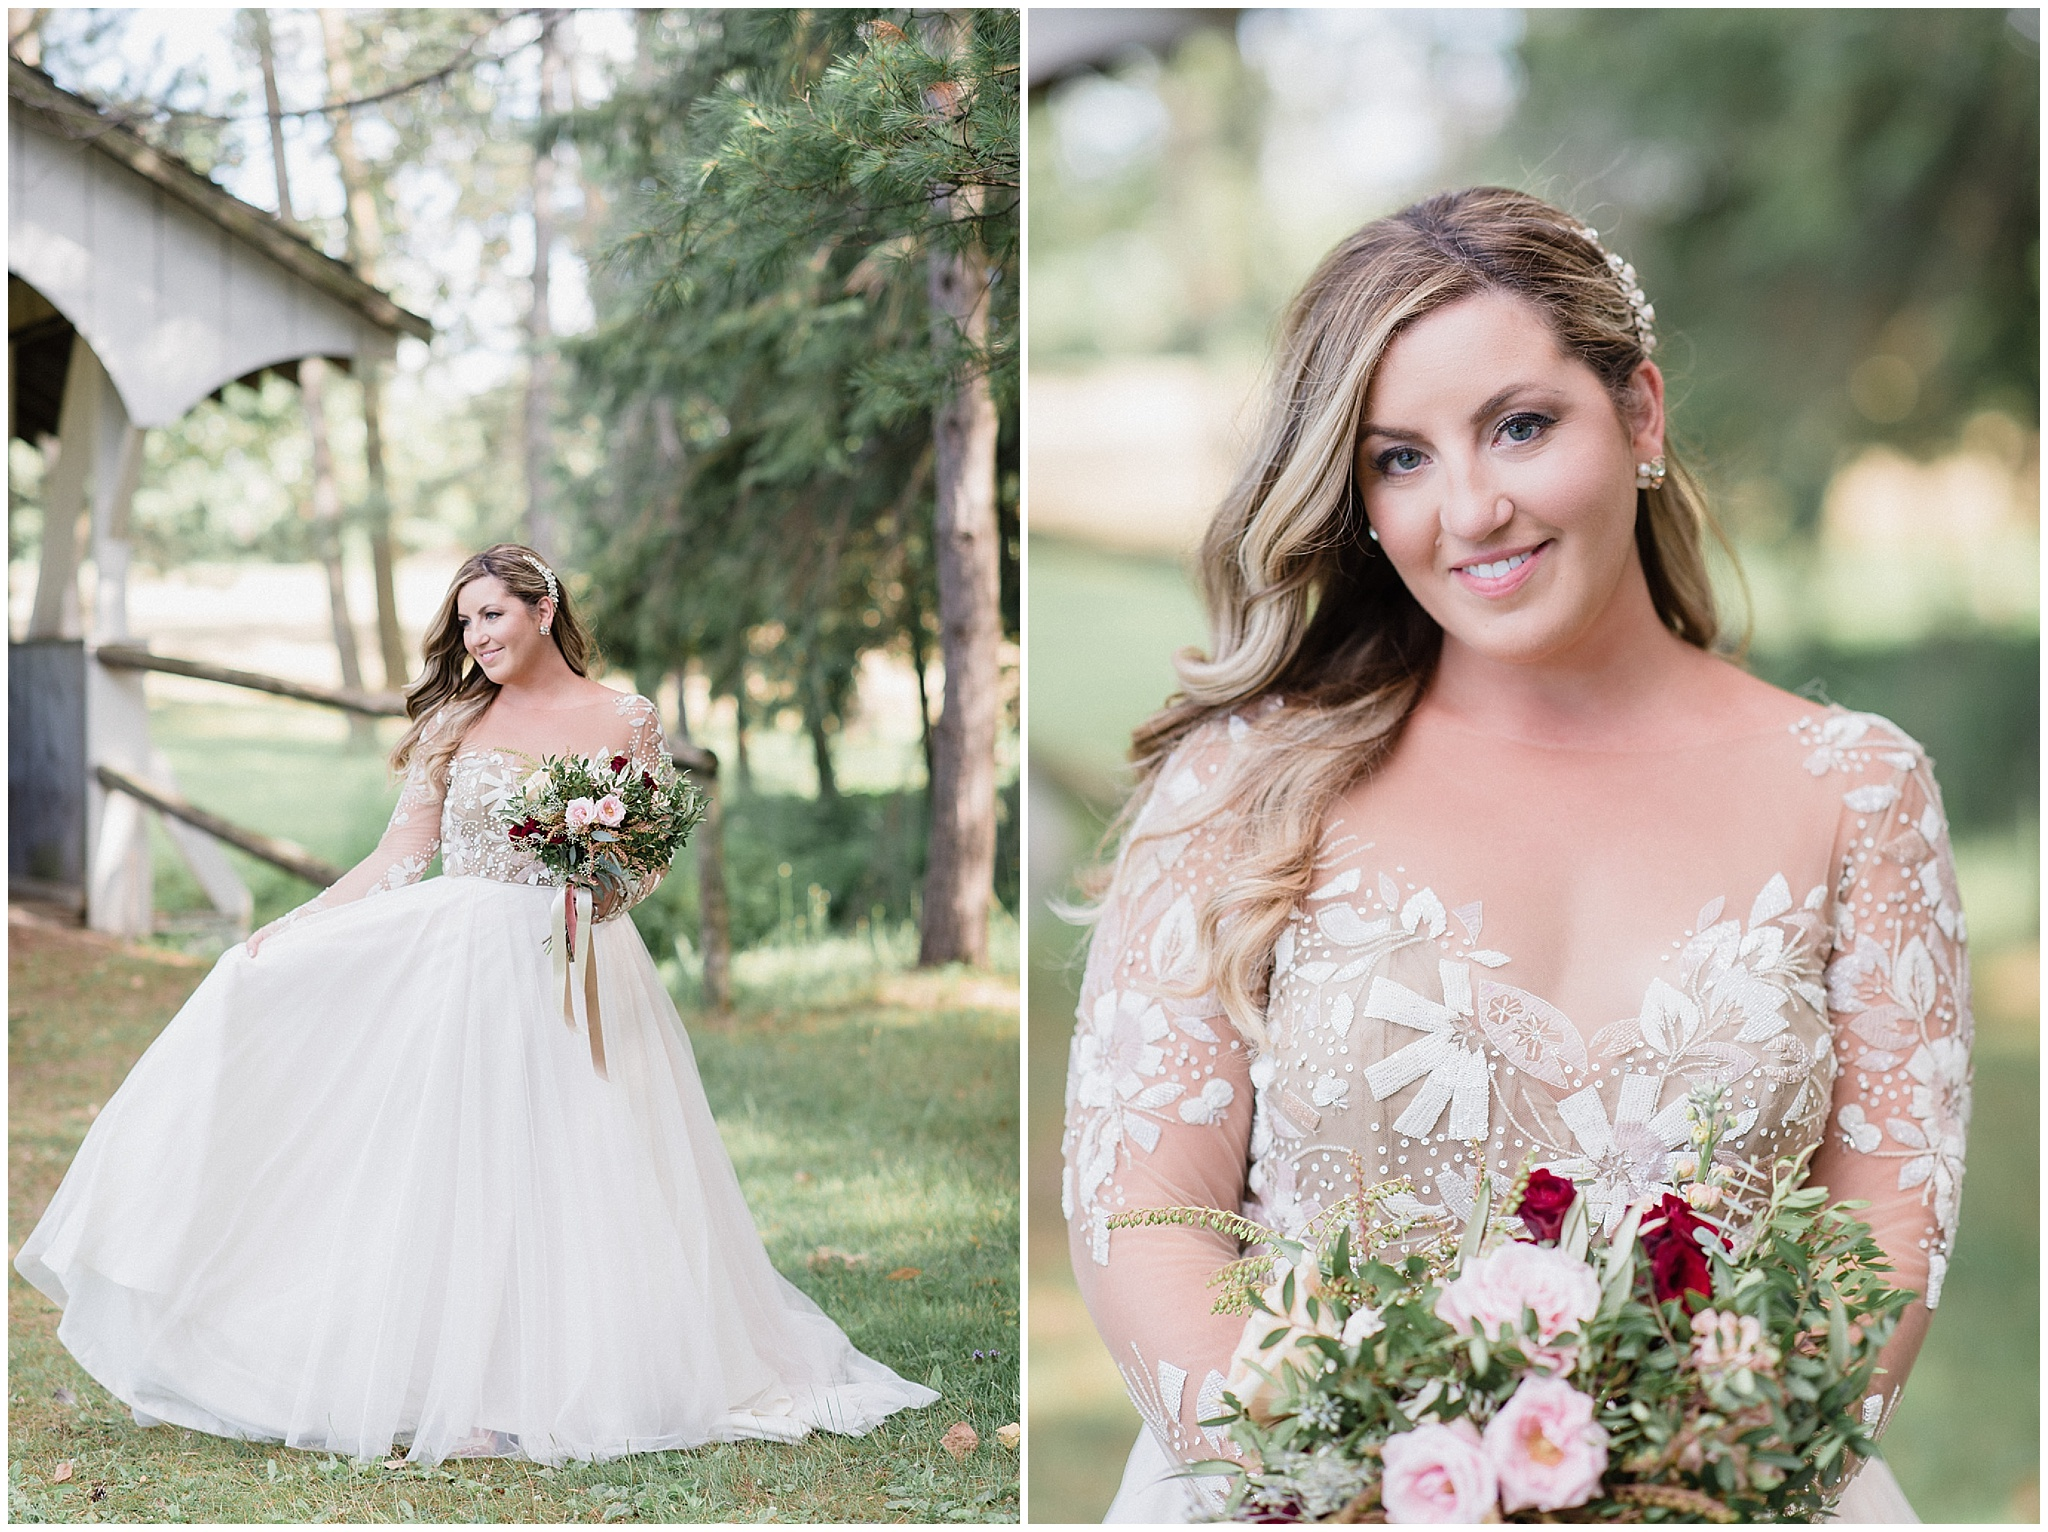 Bridal portraits at Tralee Wedding Facility, photographed by Jenn Kavanagh Photography